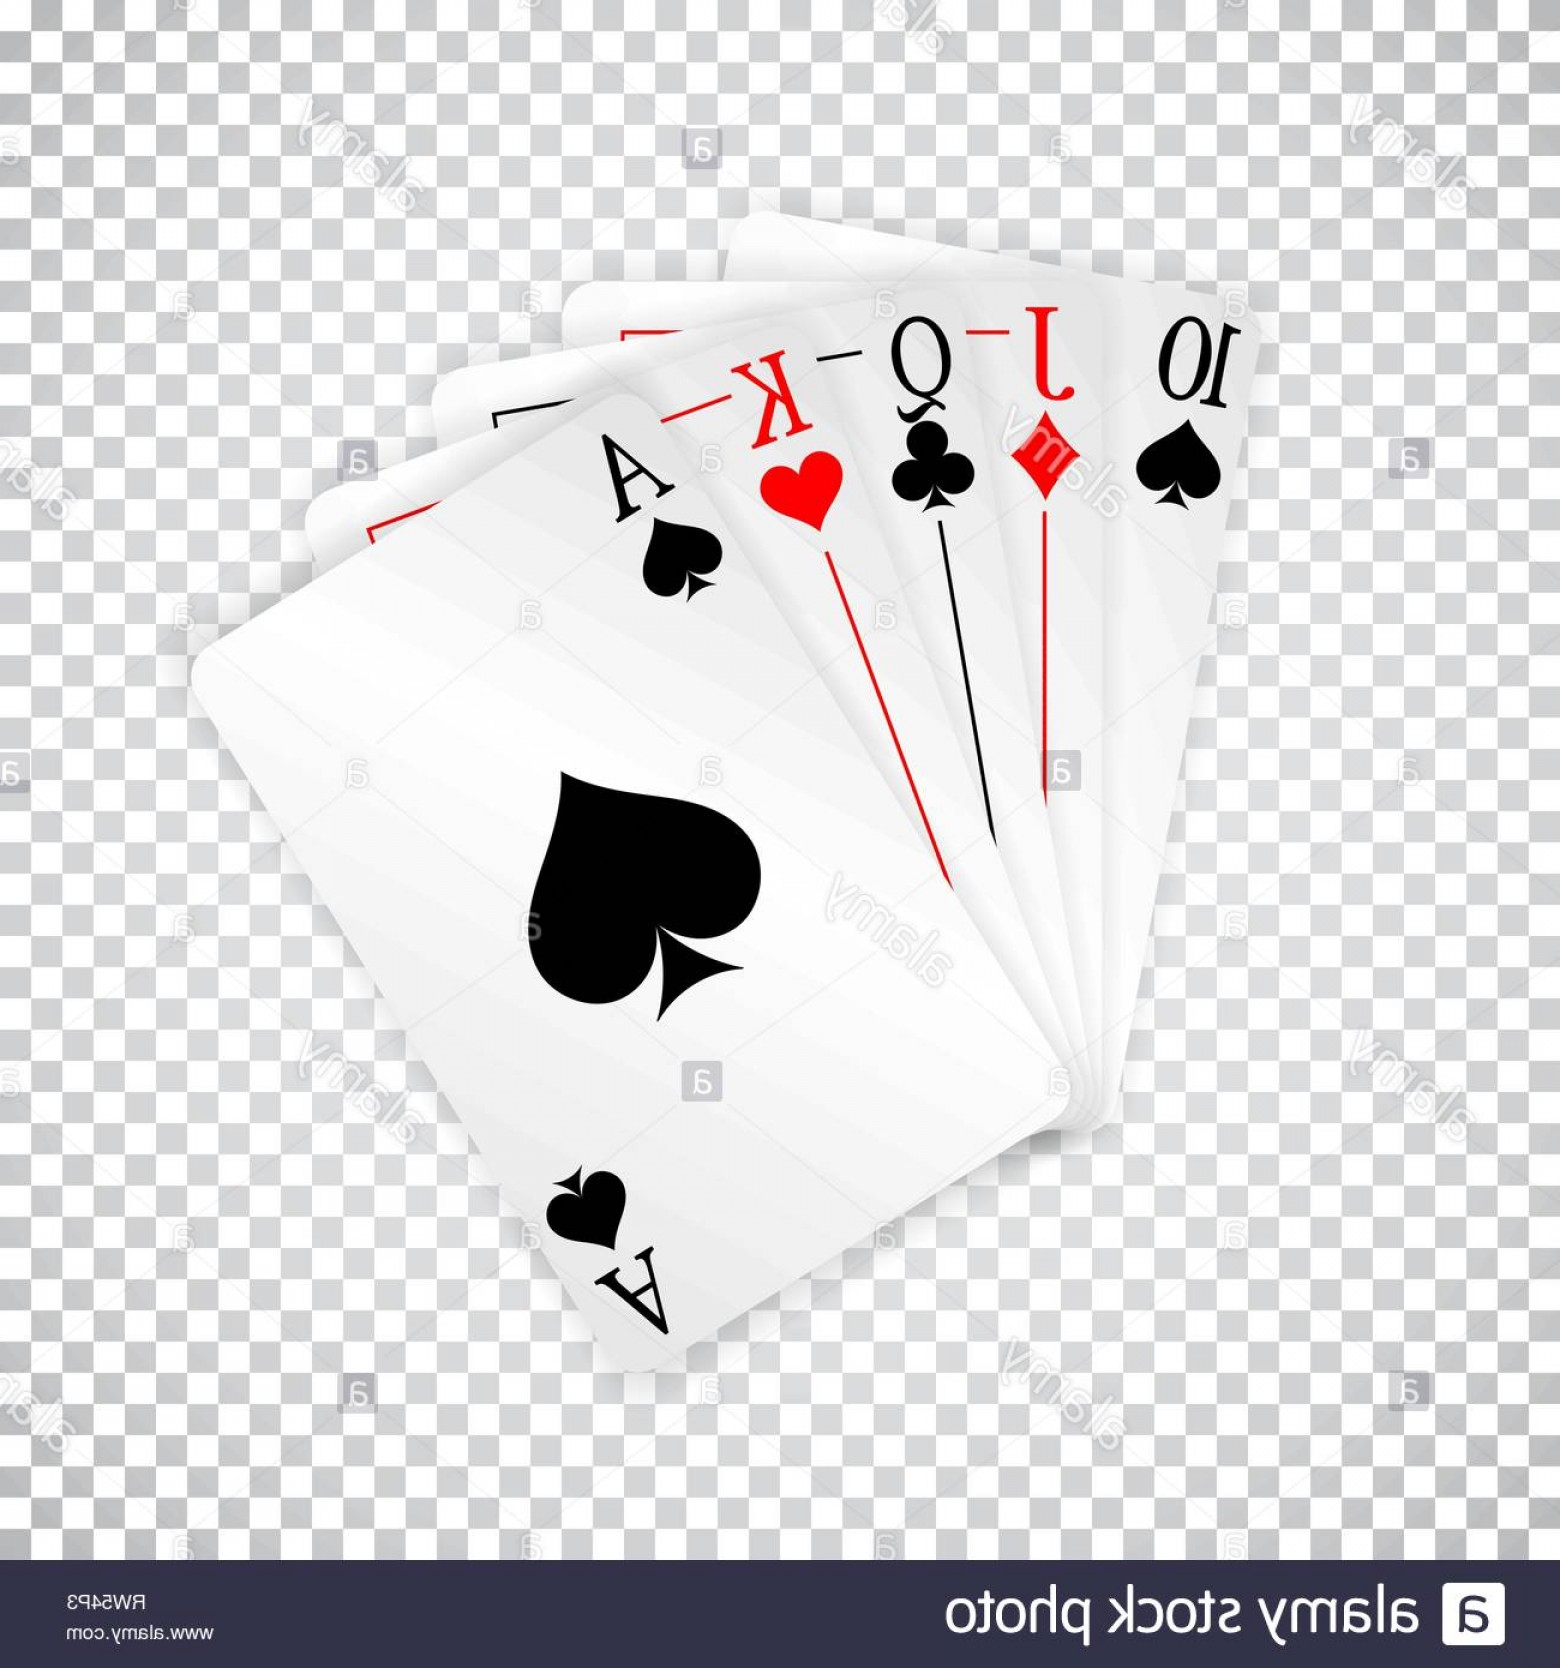 Poker Hand Vector: A Royal Straight Playing Cards Poker Hand Image